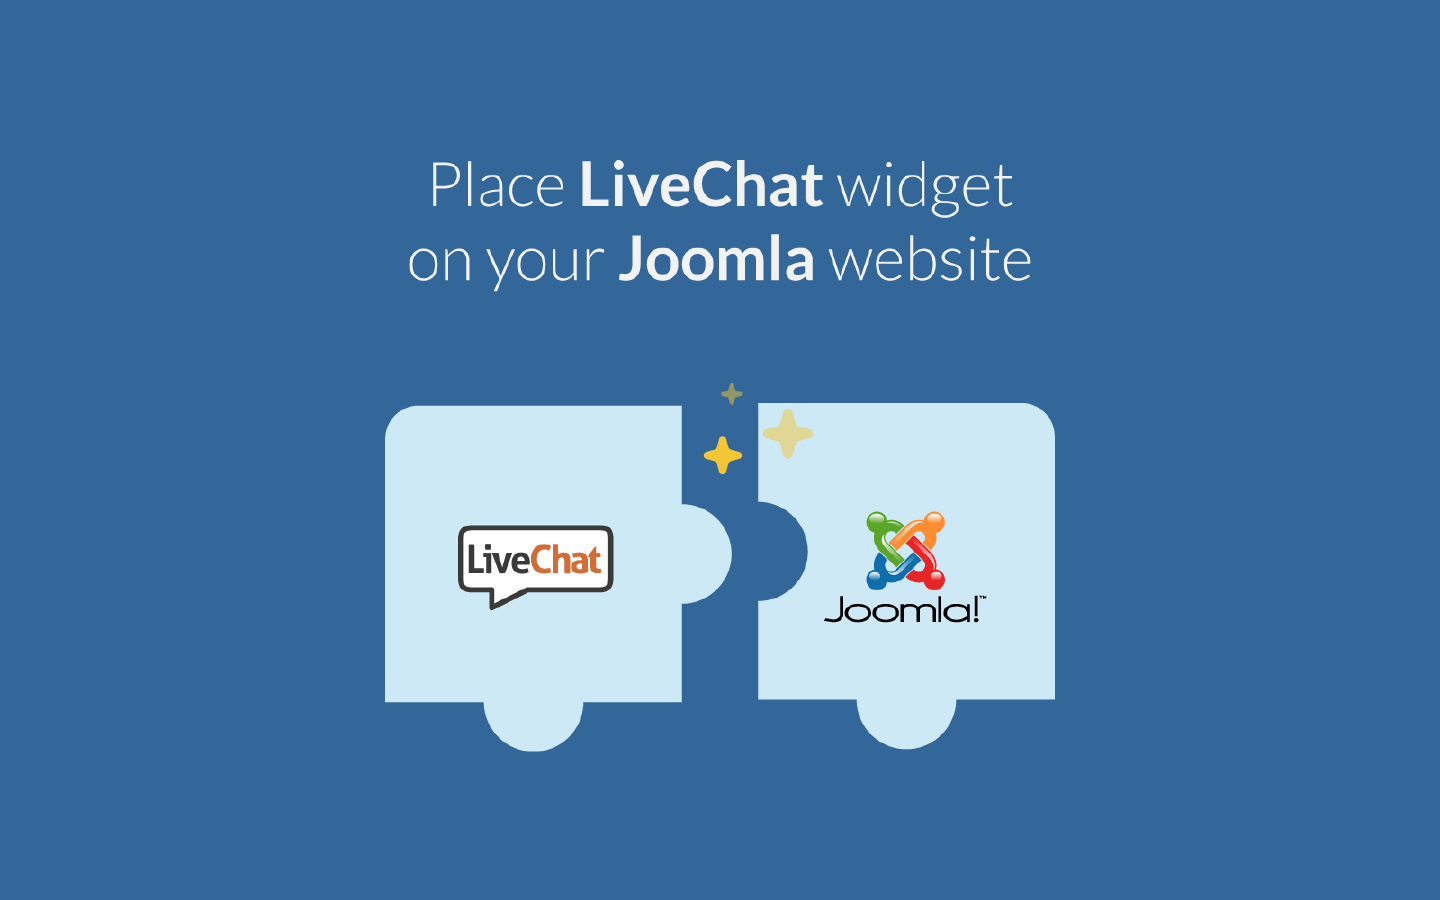 LiveChat integrates with Joomla